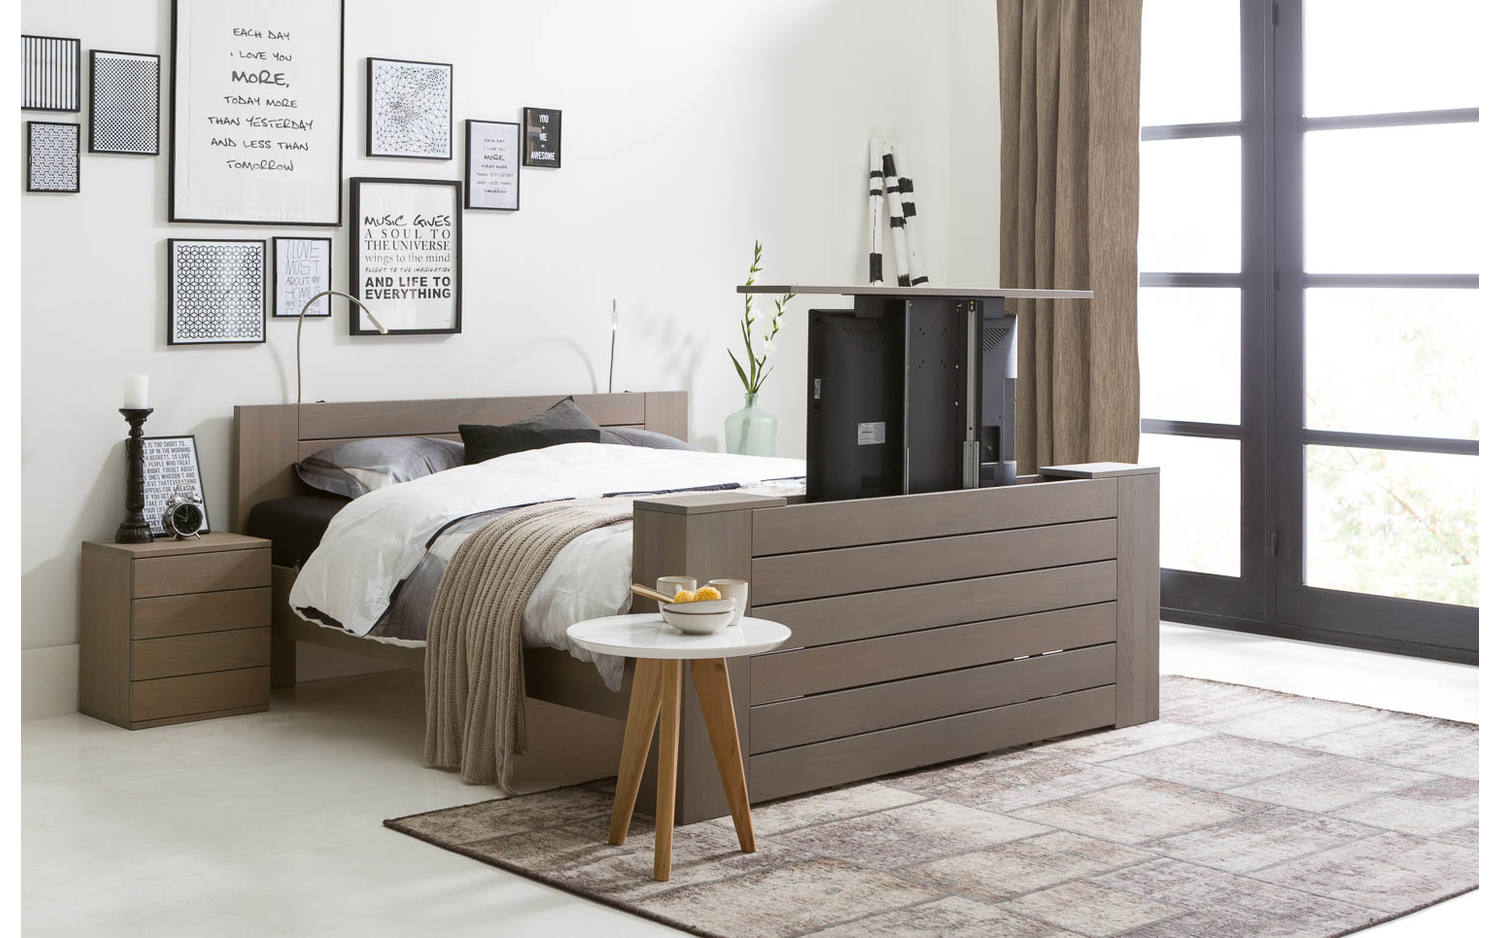 bettgestell aberson grau eiken kopen goossens. Black Bedroom Furniture Sets. Home Design Ideas